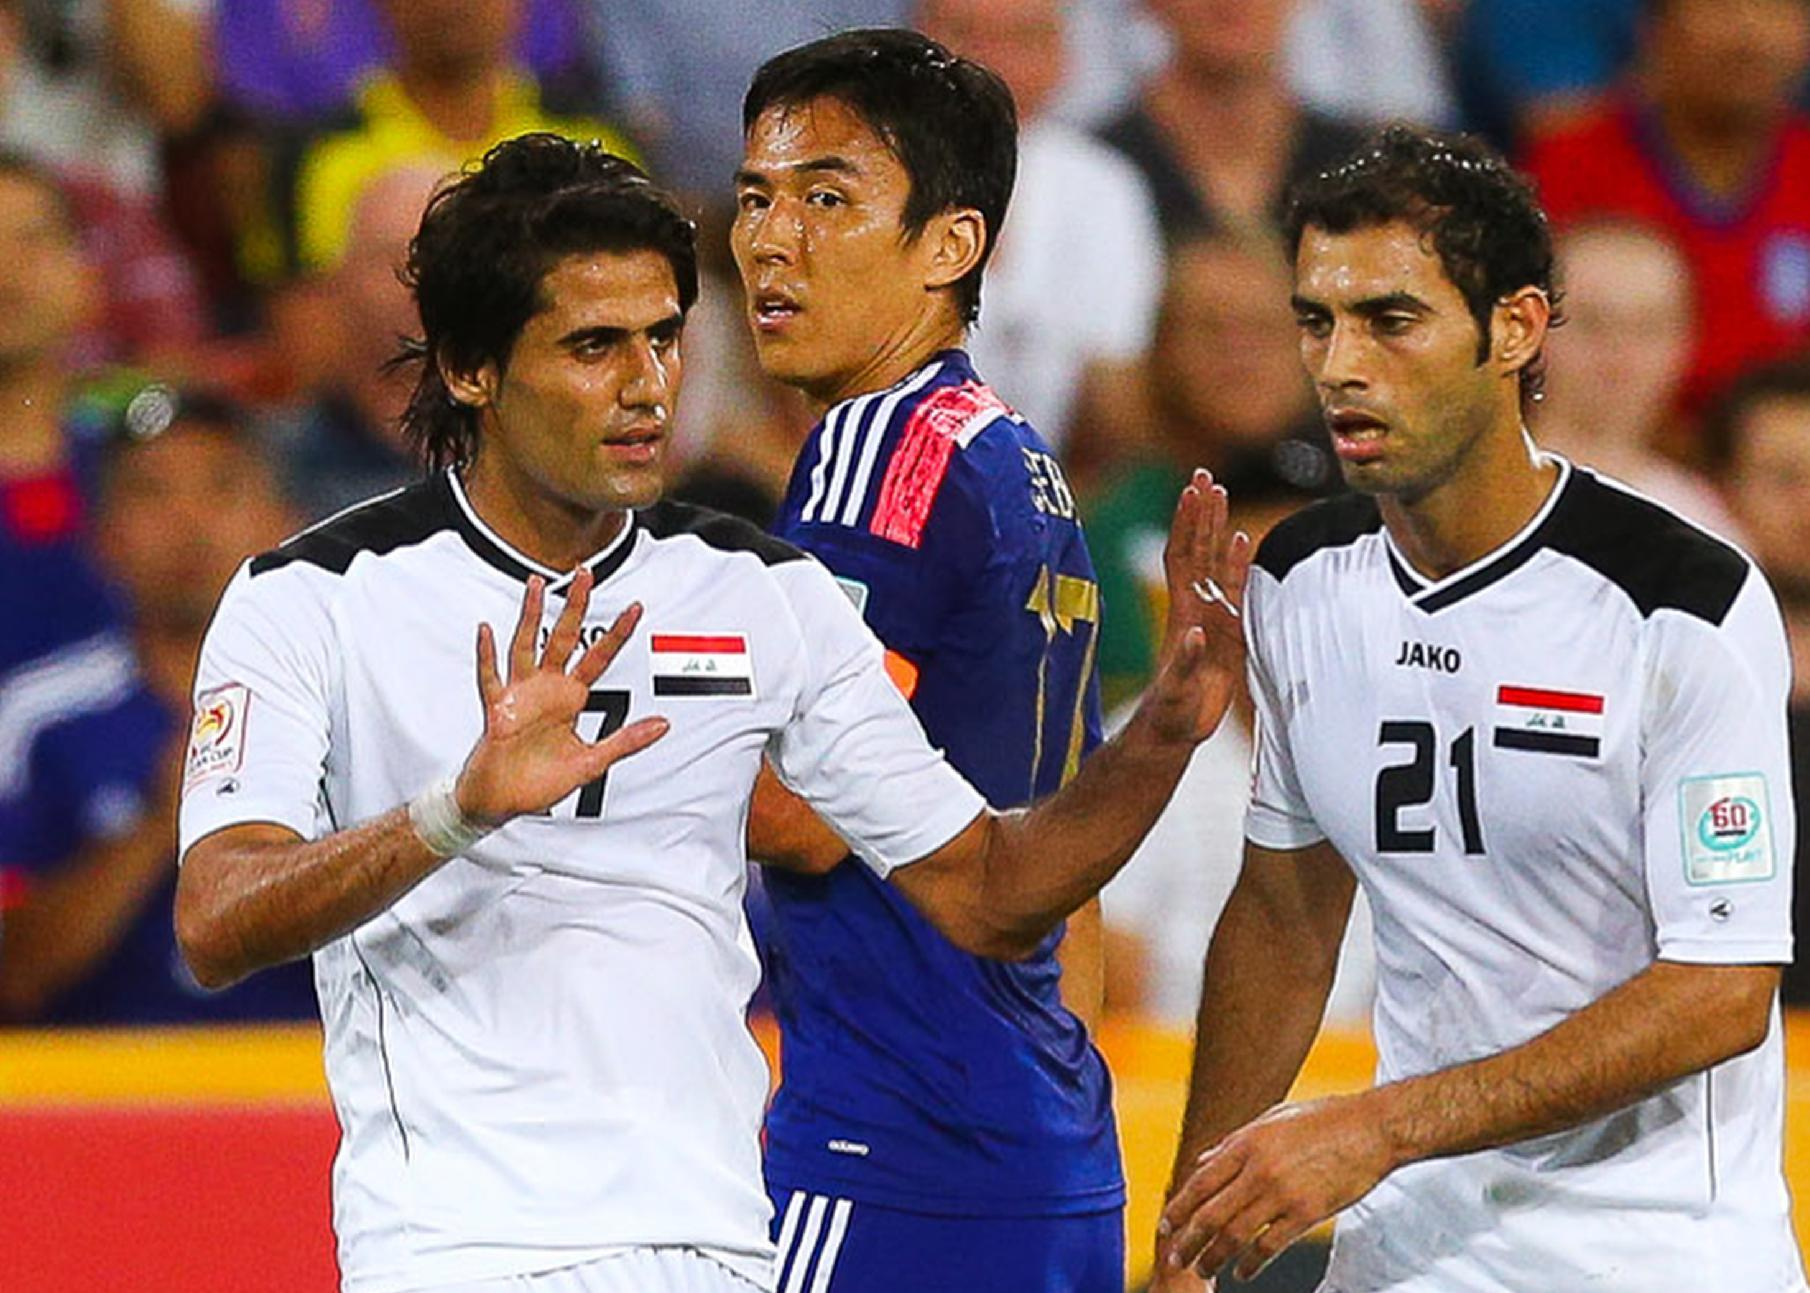 Iran's protest over Iraqi player rejected